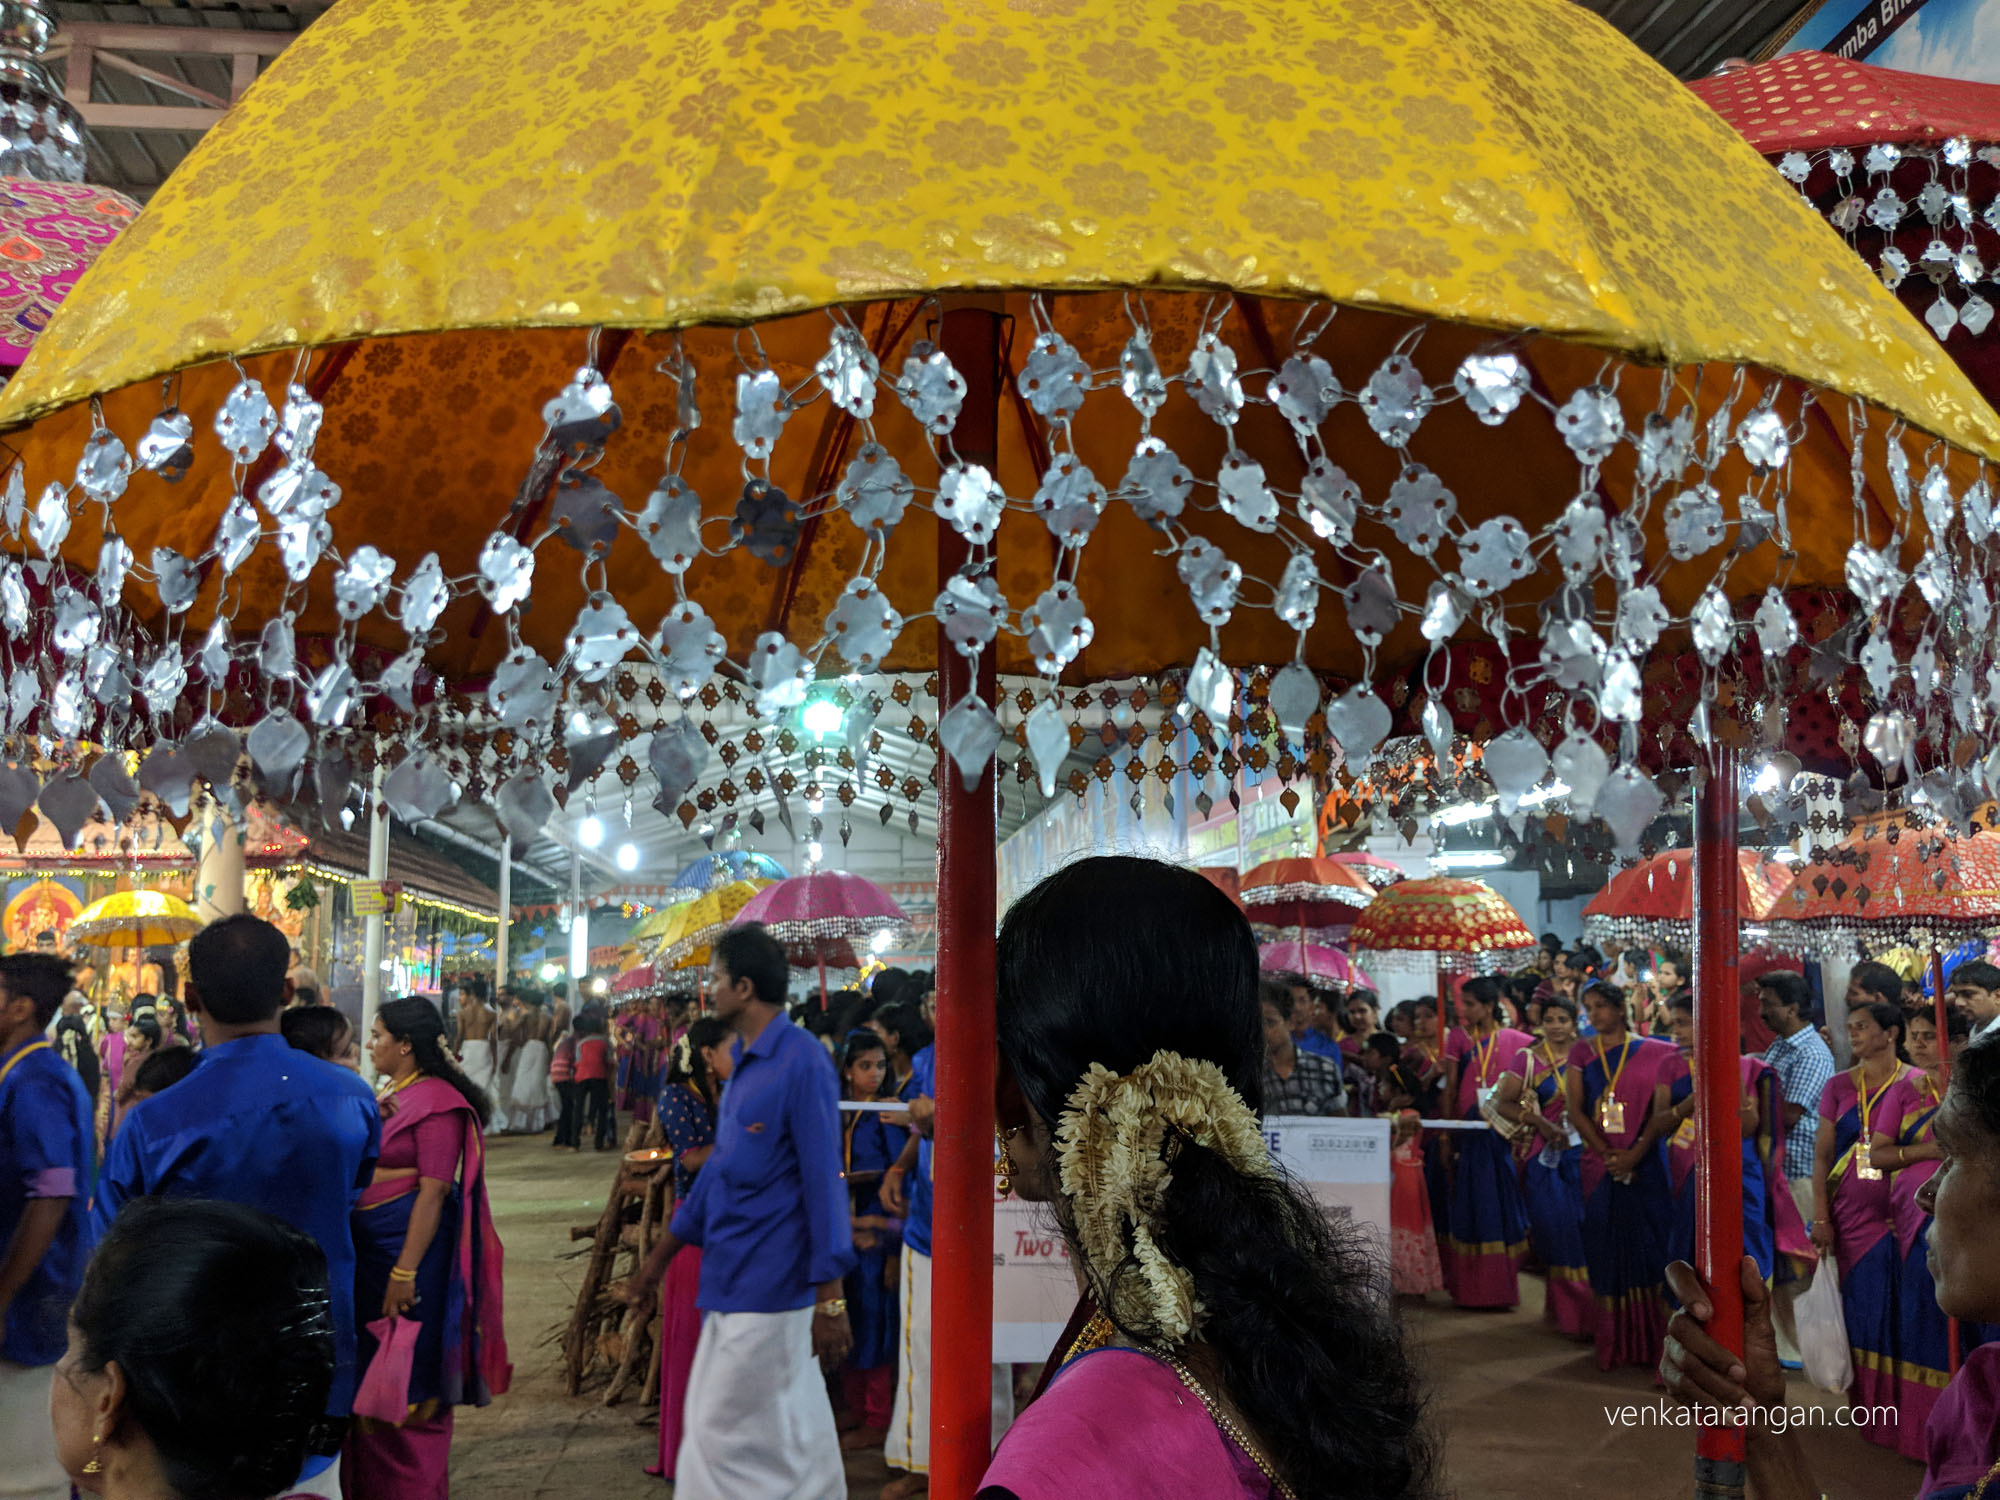 Elaborately decorated umbrellas brought as offerings to the Goddess